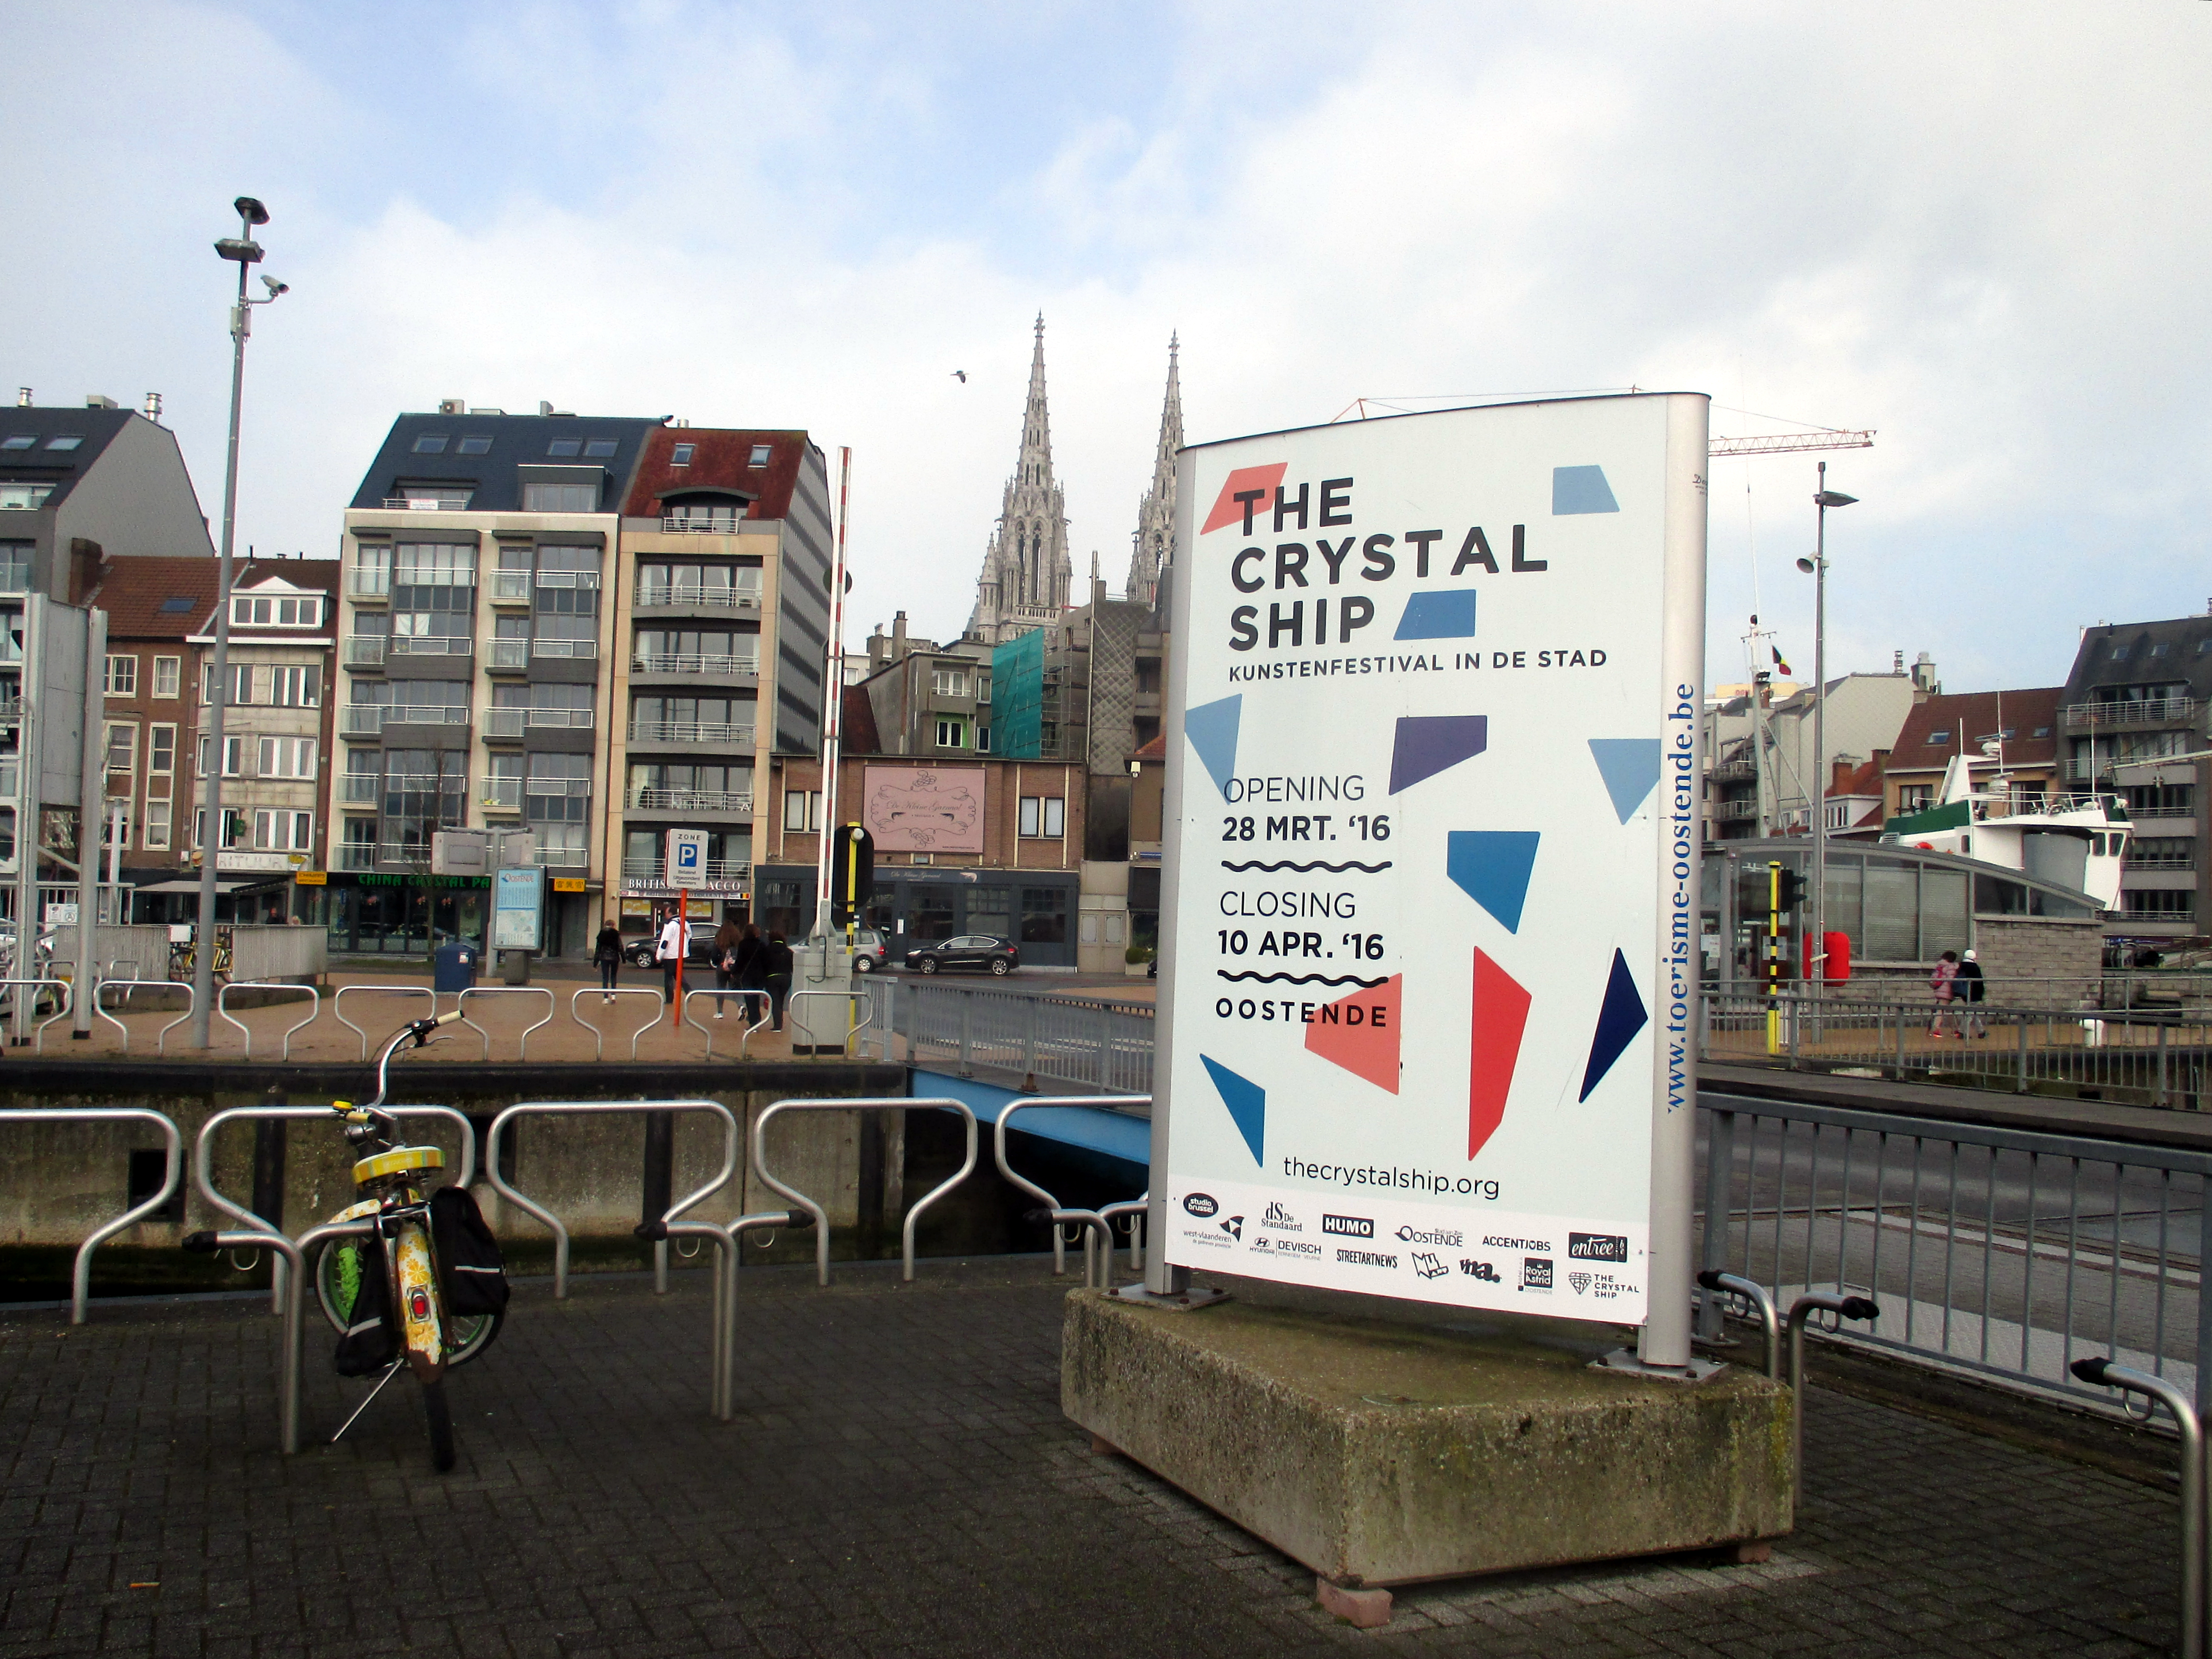 the-crystal-ship-ostende